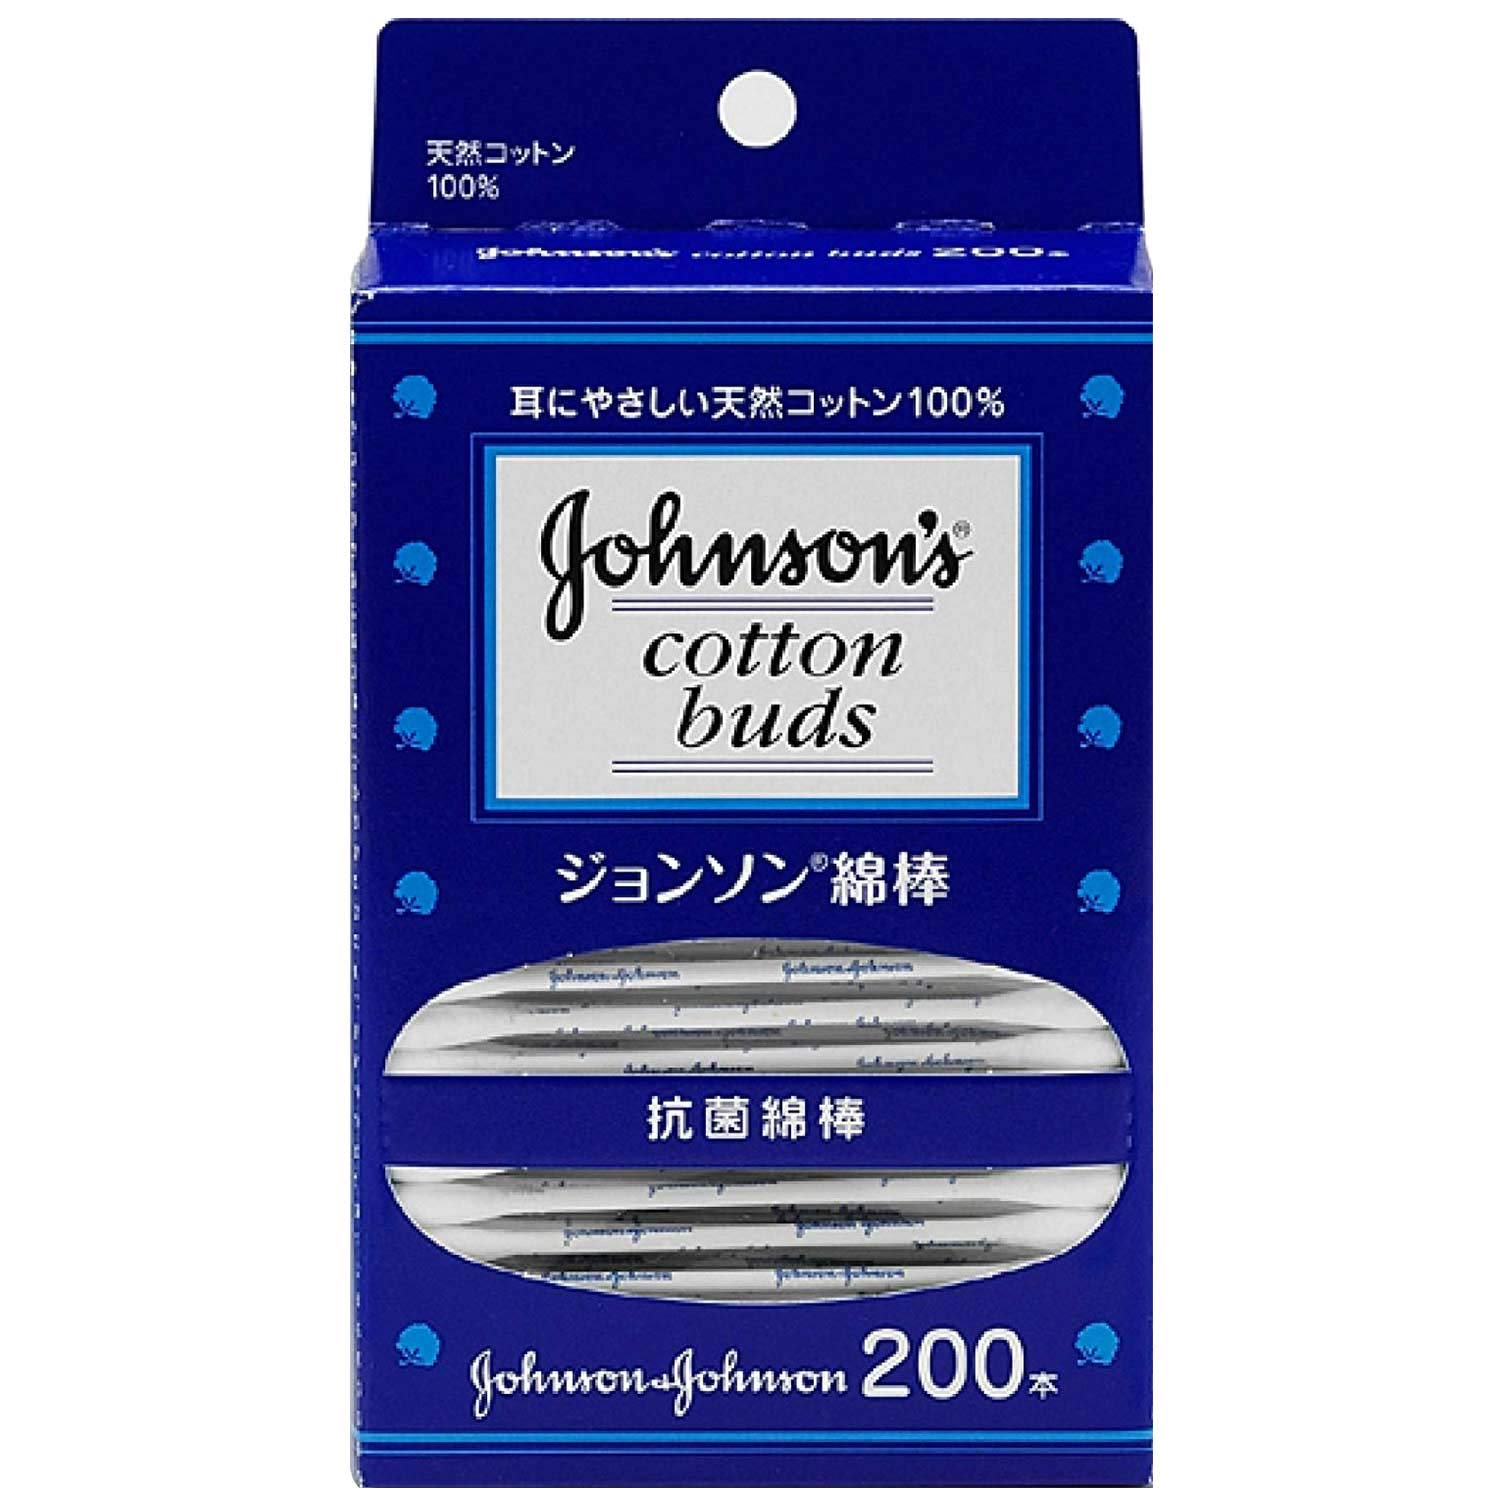 Japan Health and Personal Care - Johnson cotton swab 200 pieces *AF27*